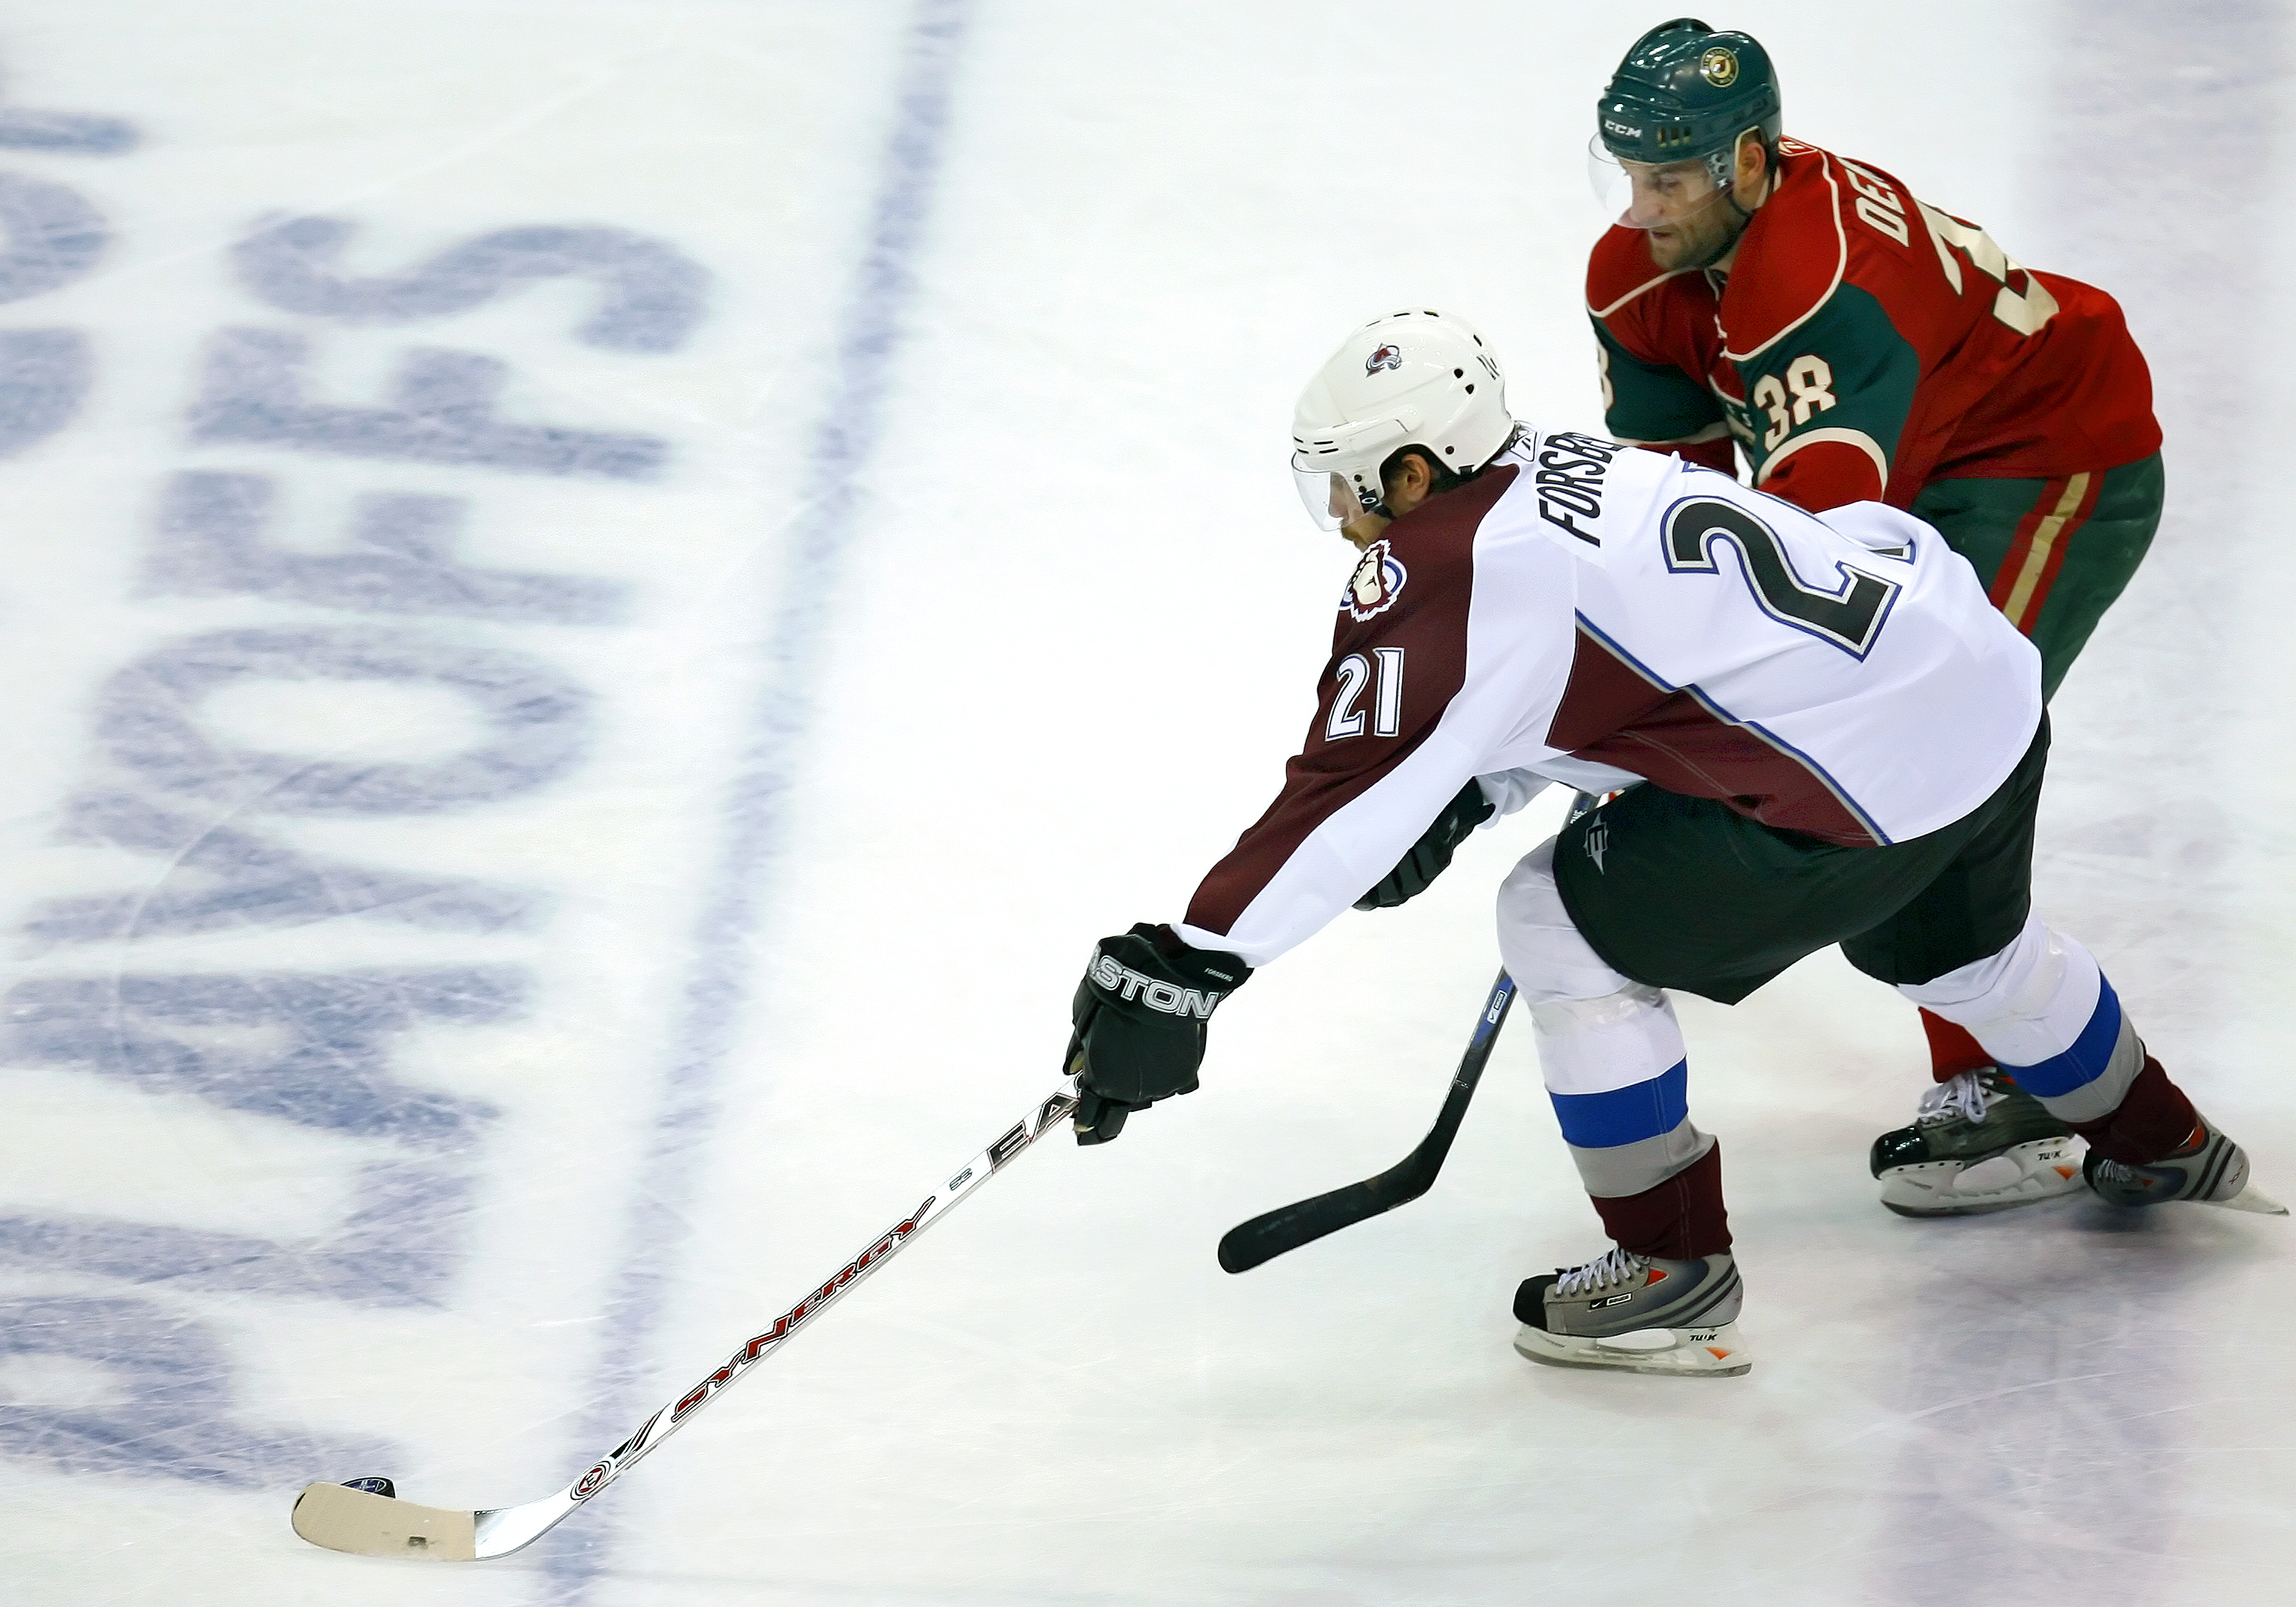 ST. PAUL, MN - APRIL 11:   Peter Forsberg #21 of the Colorado Avalanche tries to skate past Pavol Demitra #38 of the Minnesota Wild during game two of the 2008 NHL Western Conference Quarterfinals on April 11, 2008 at the Xcel Energy Center in St. Paul, M